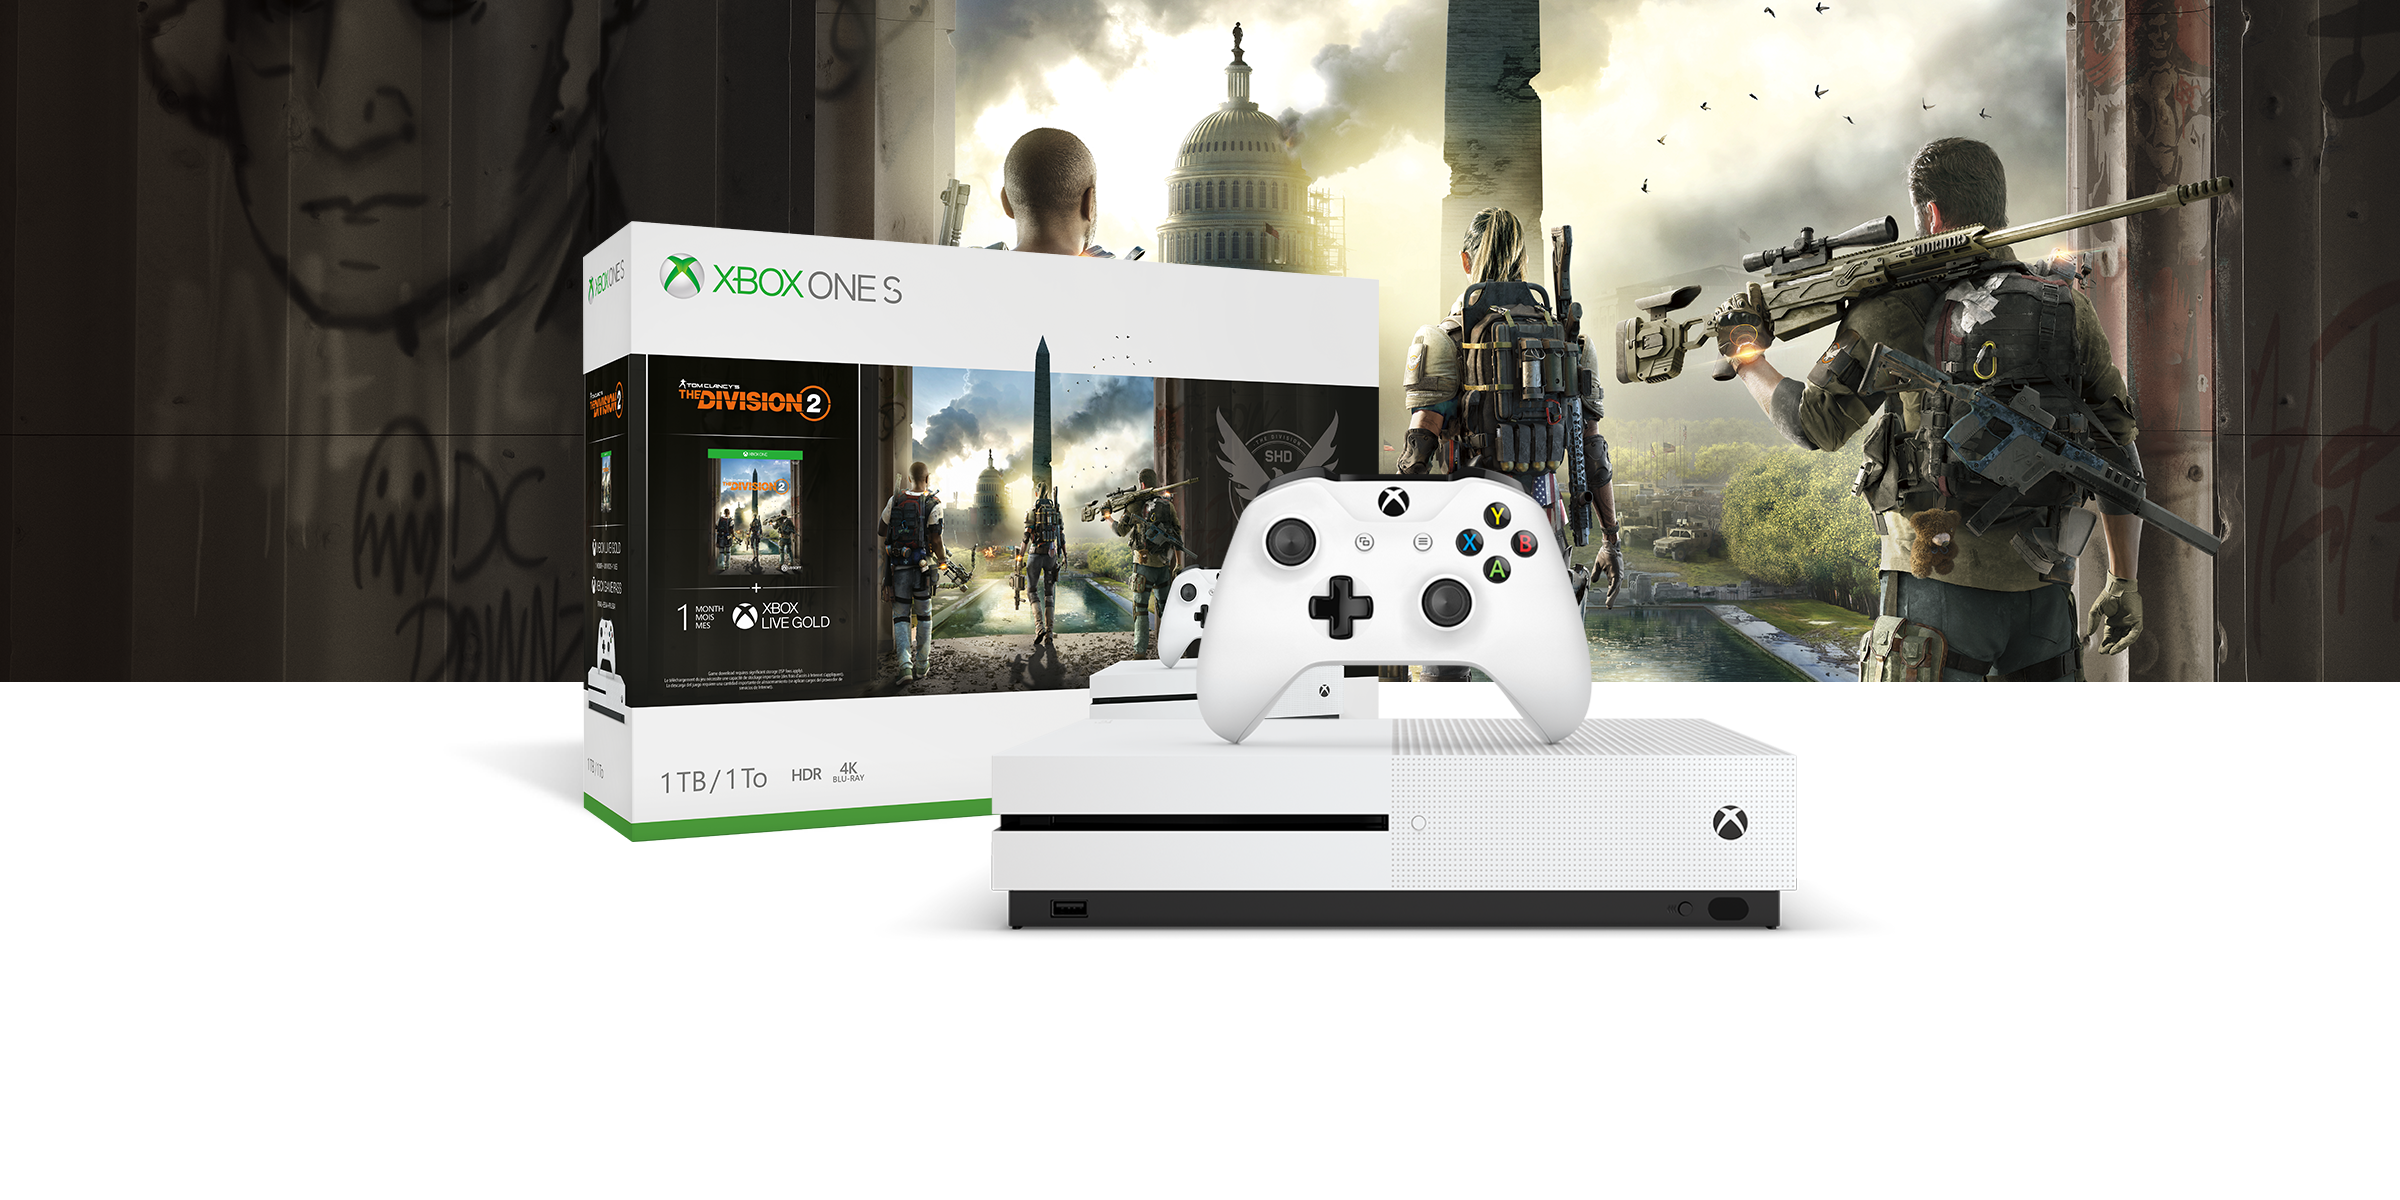 Console Xbox One S davanti a un bundle hardware raffigurante Tom Clancy's The Division 2